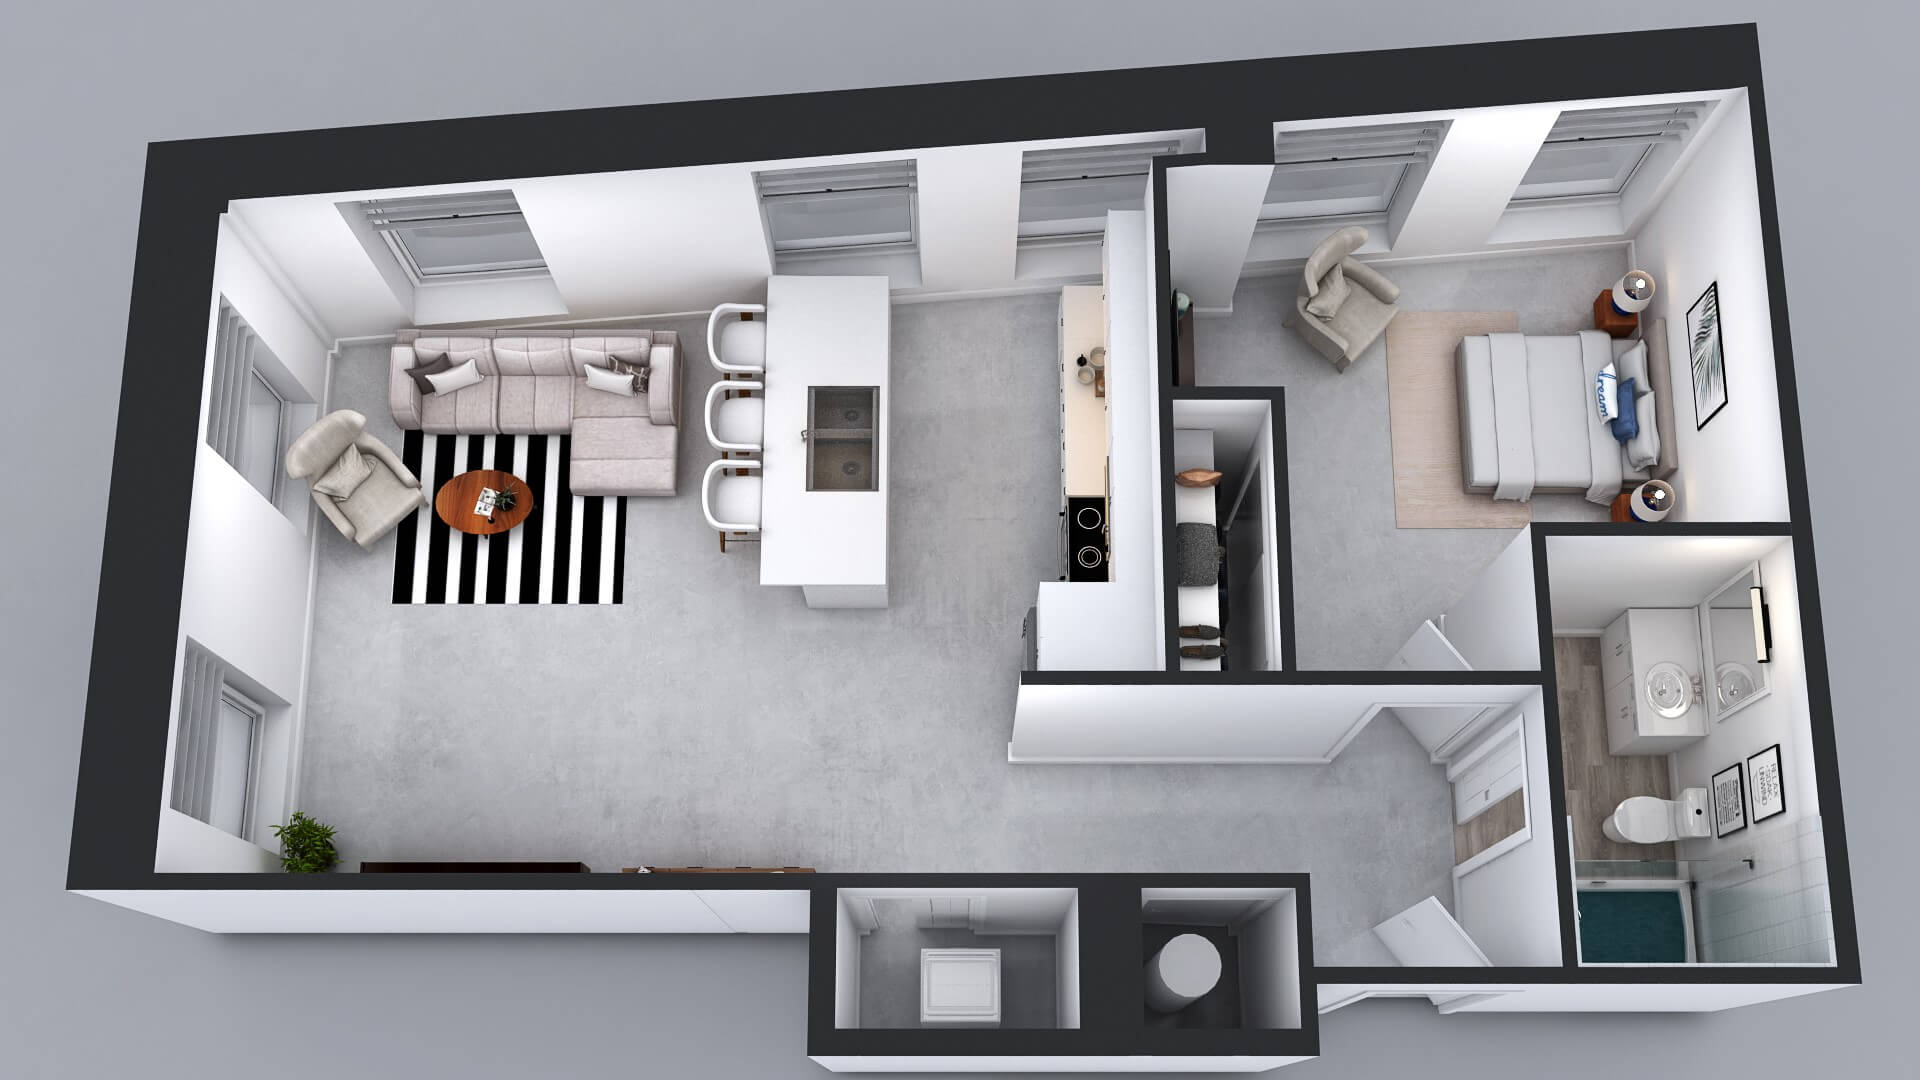 A27 Floor Plan - 1 Bed 1 Bath